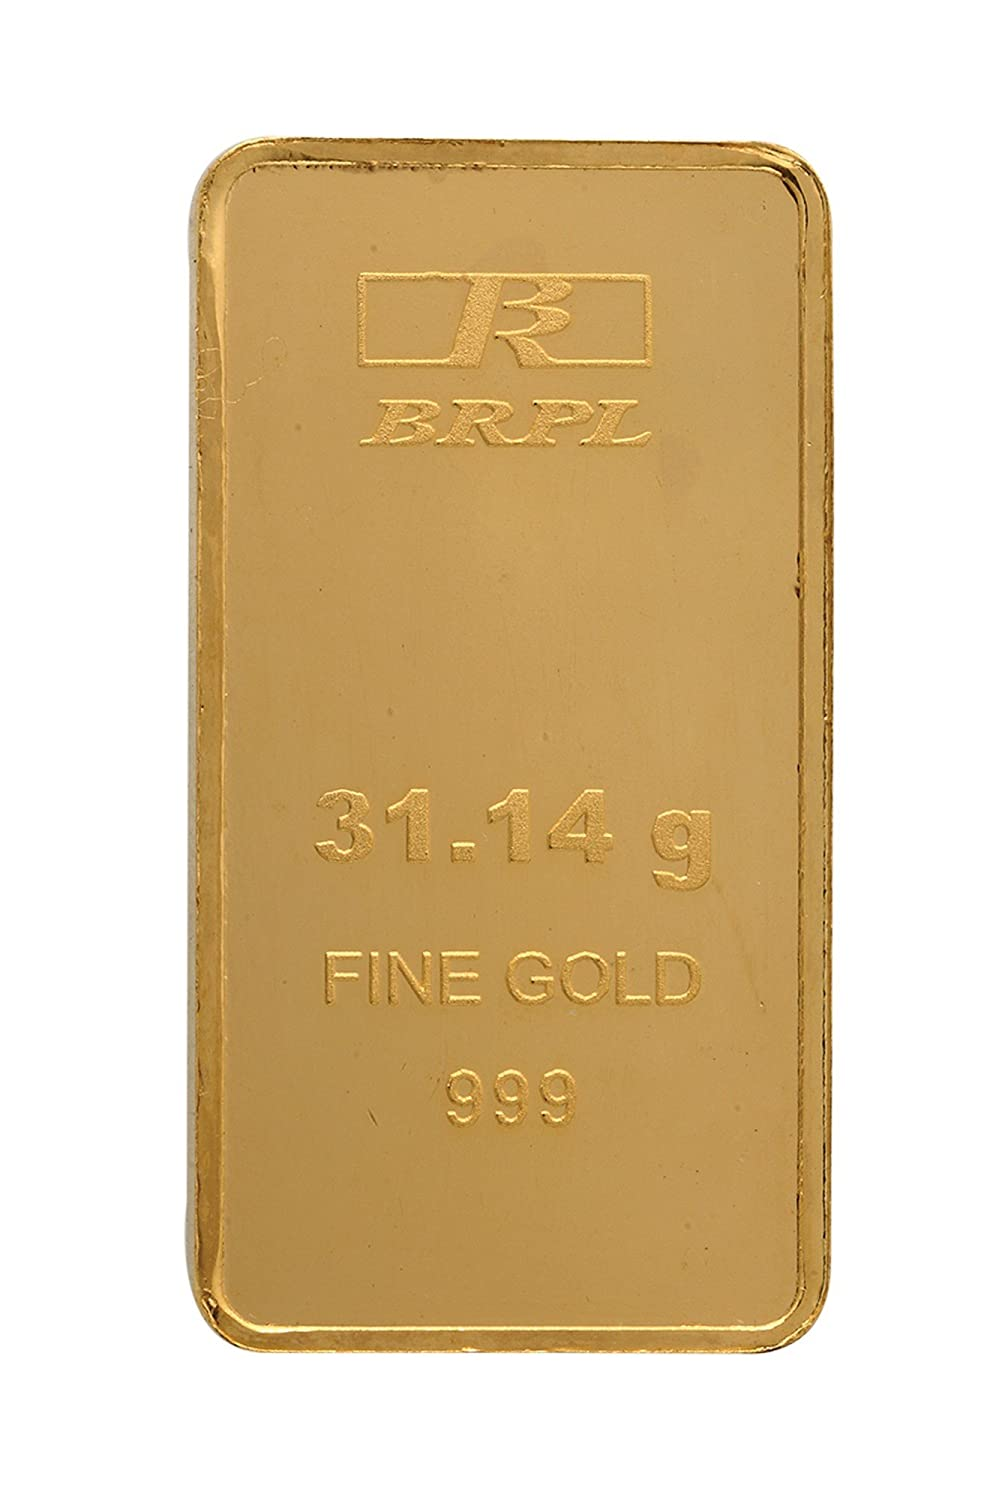 31.104 gm, 24k (999) Yellow Gold Bar